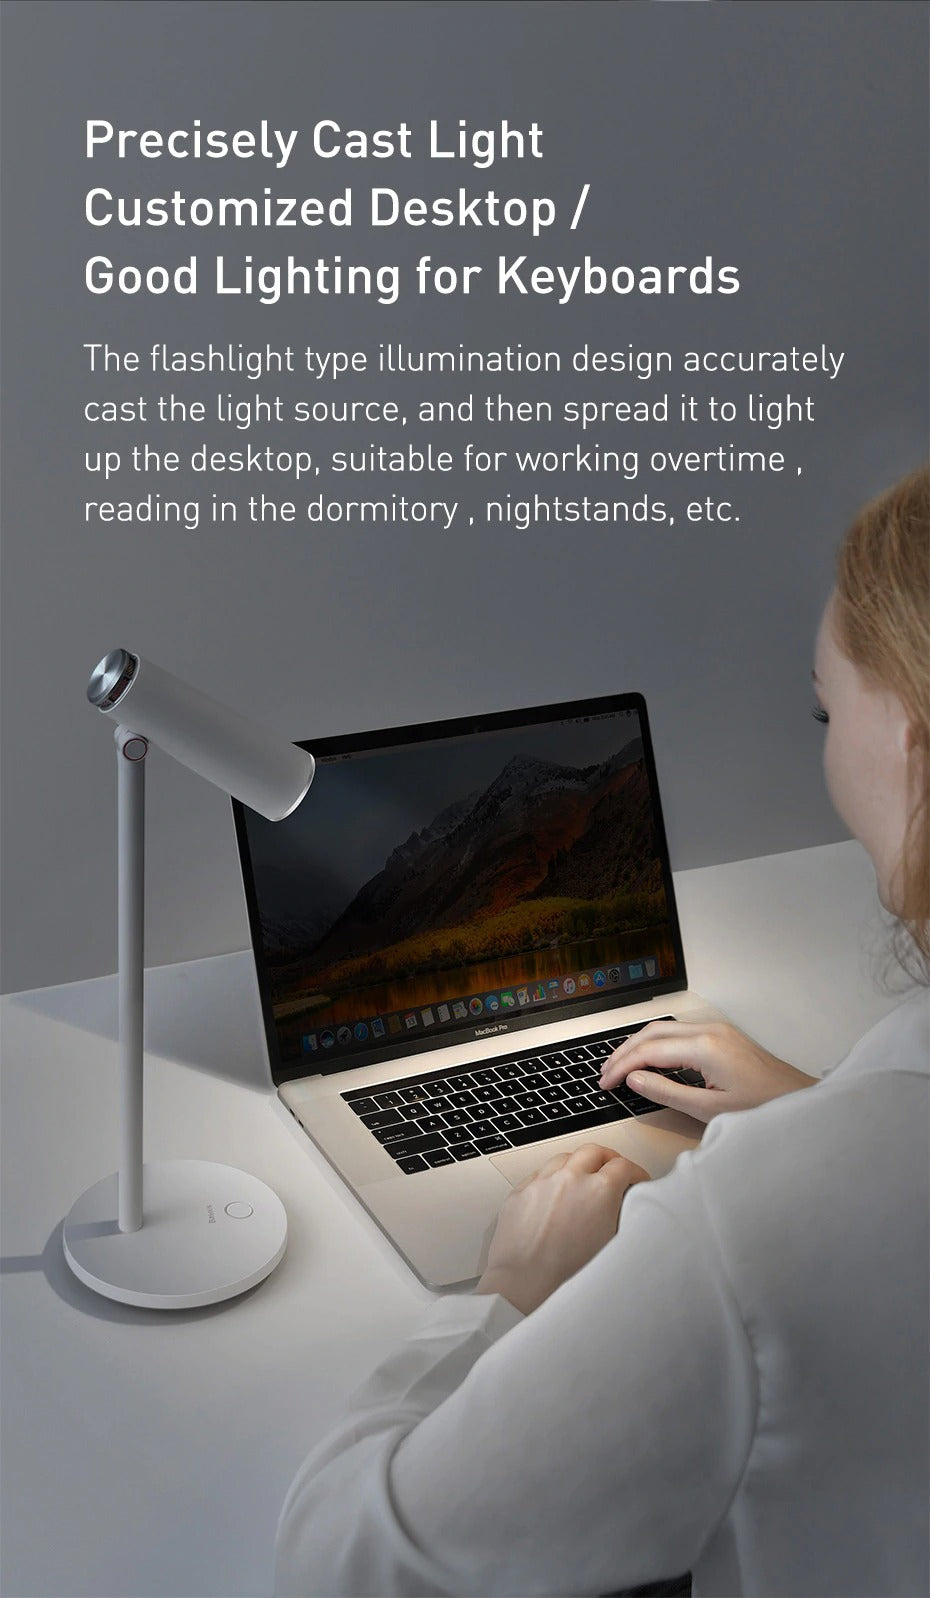 Desk_lamp_Precisely_cast_light_customized_desktop_good_lighting_for_study